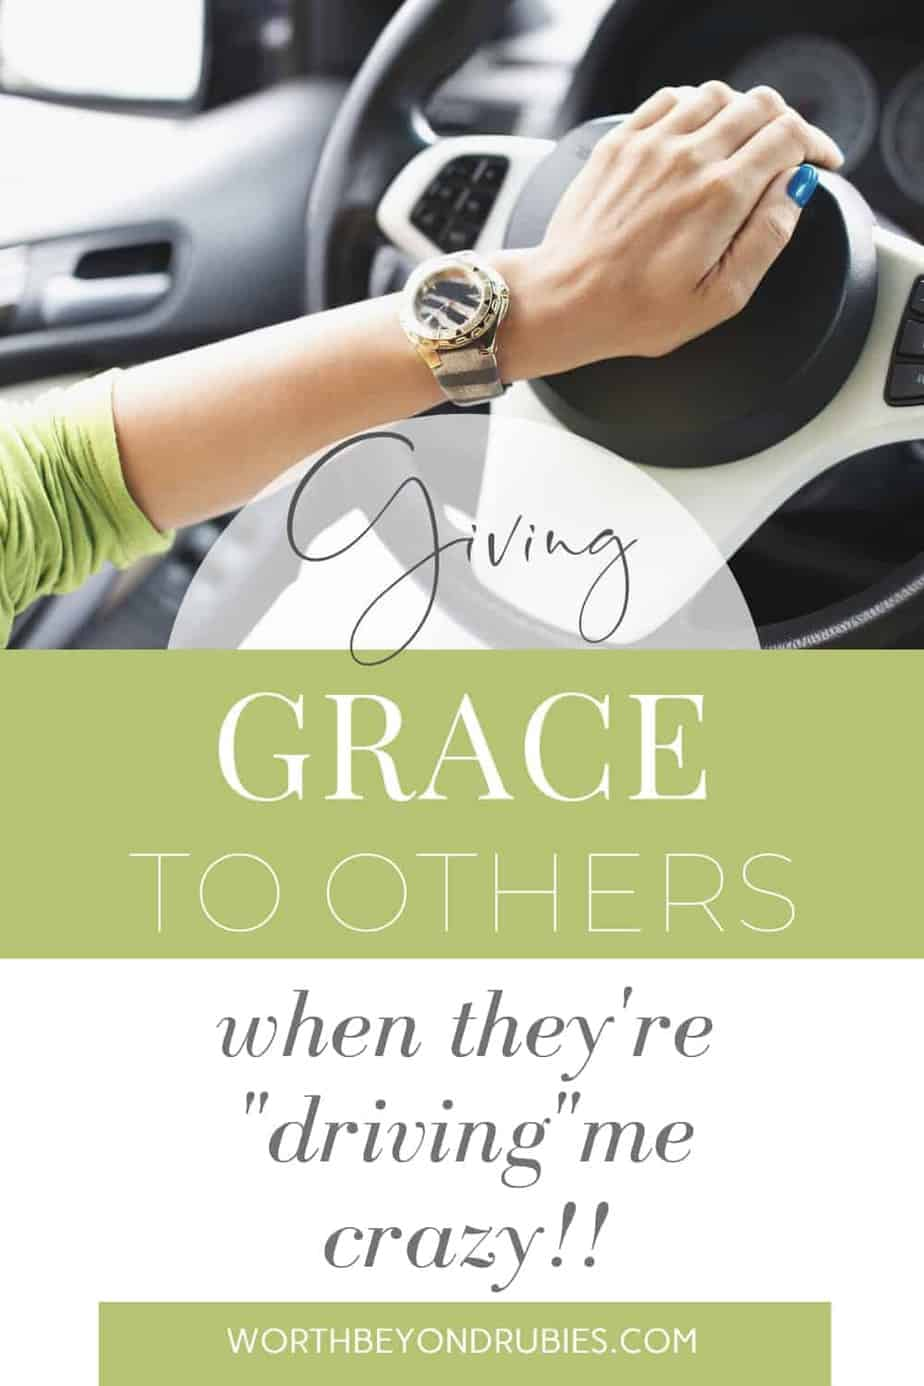 """An image of a woman's hand showing a lime green sleeve and an animal print watch and she has her hand on the horn of her car with a text overlay that says """"Giving Grace to Others When They're """"Driving"""" You Crazy!!"""